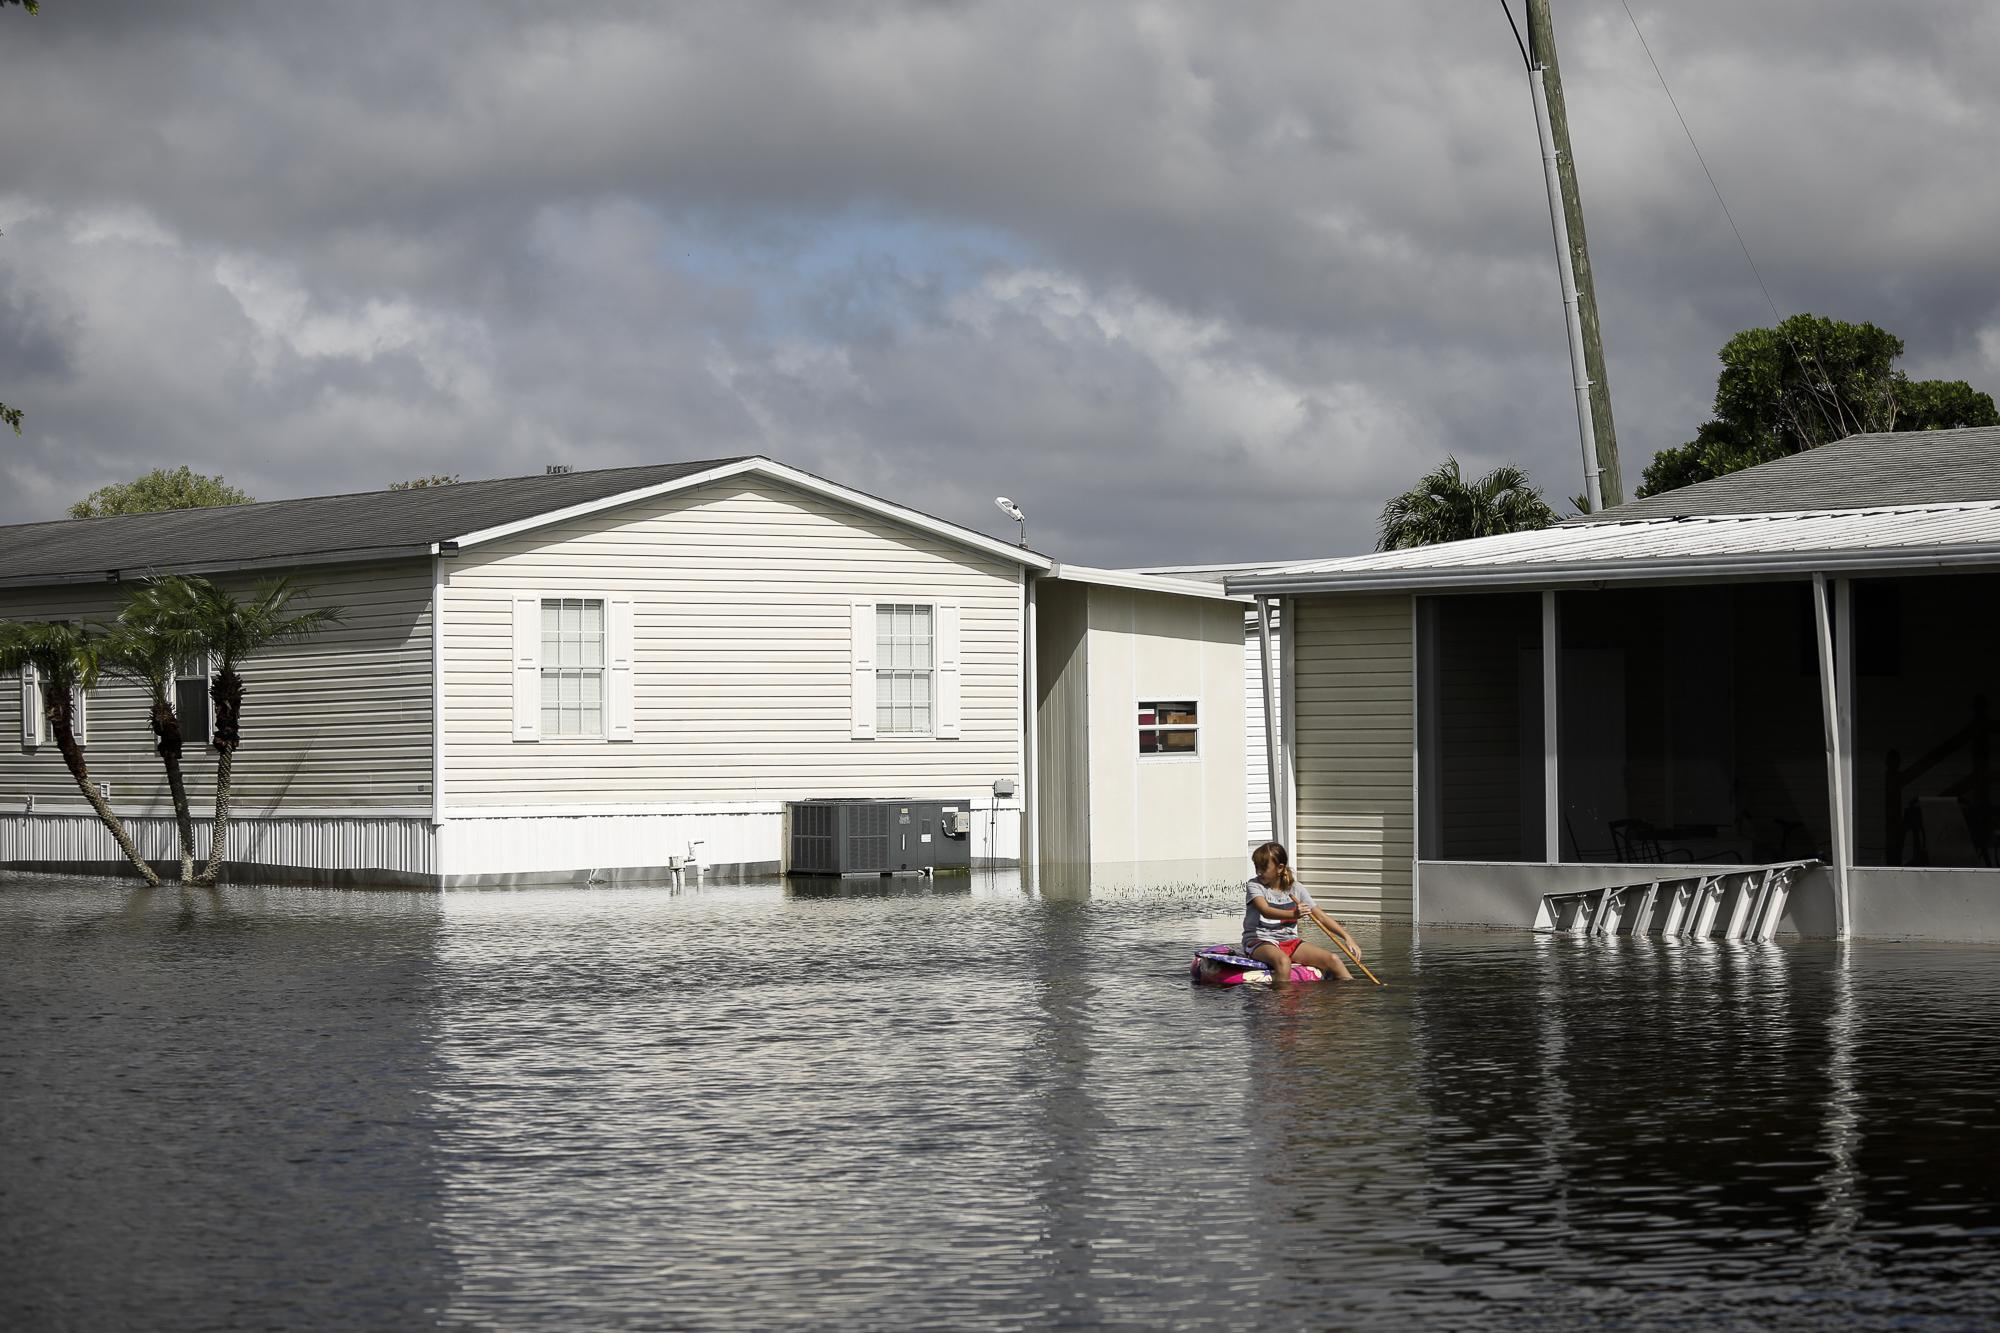 A girl pushes a float boat in floodwaters caused by Storm Eta in Davie, Florida, U.S., November 9, 2020. REUTERS/Marco Bello